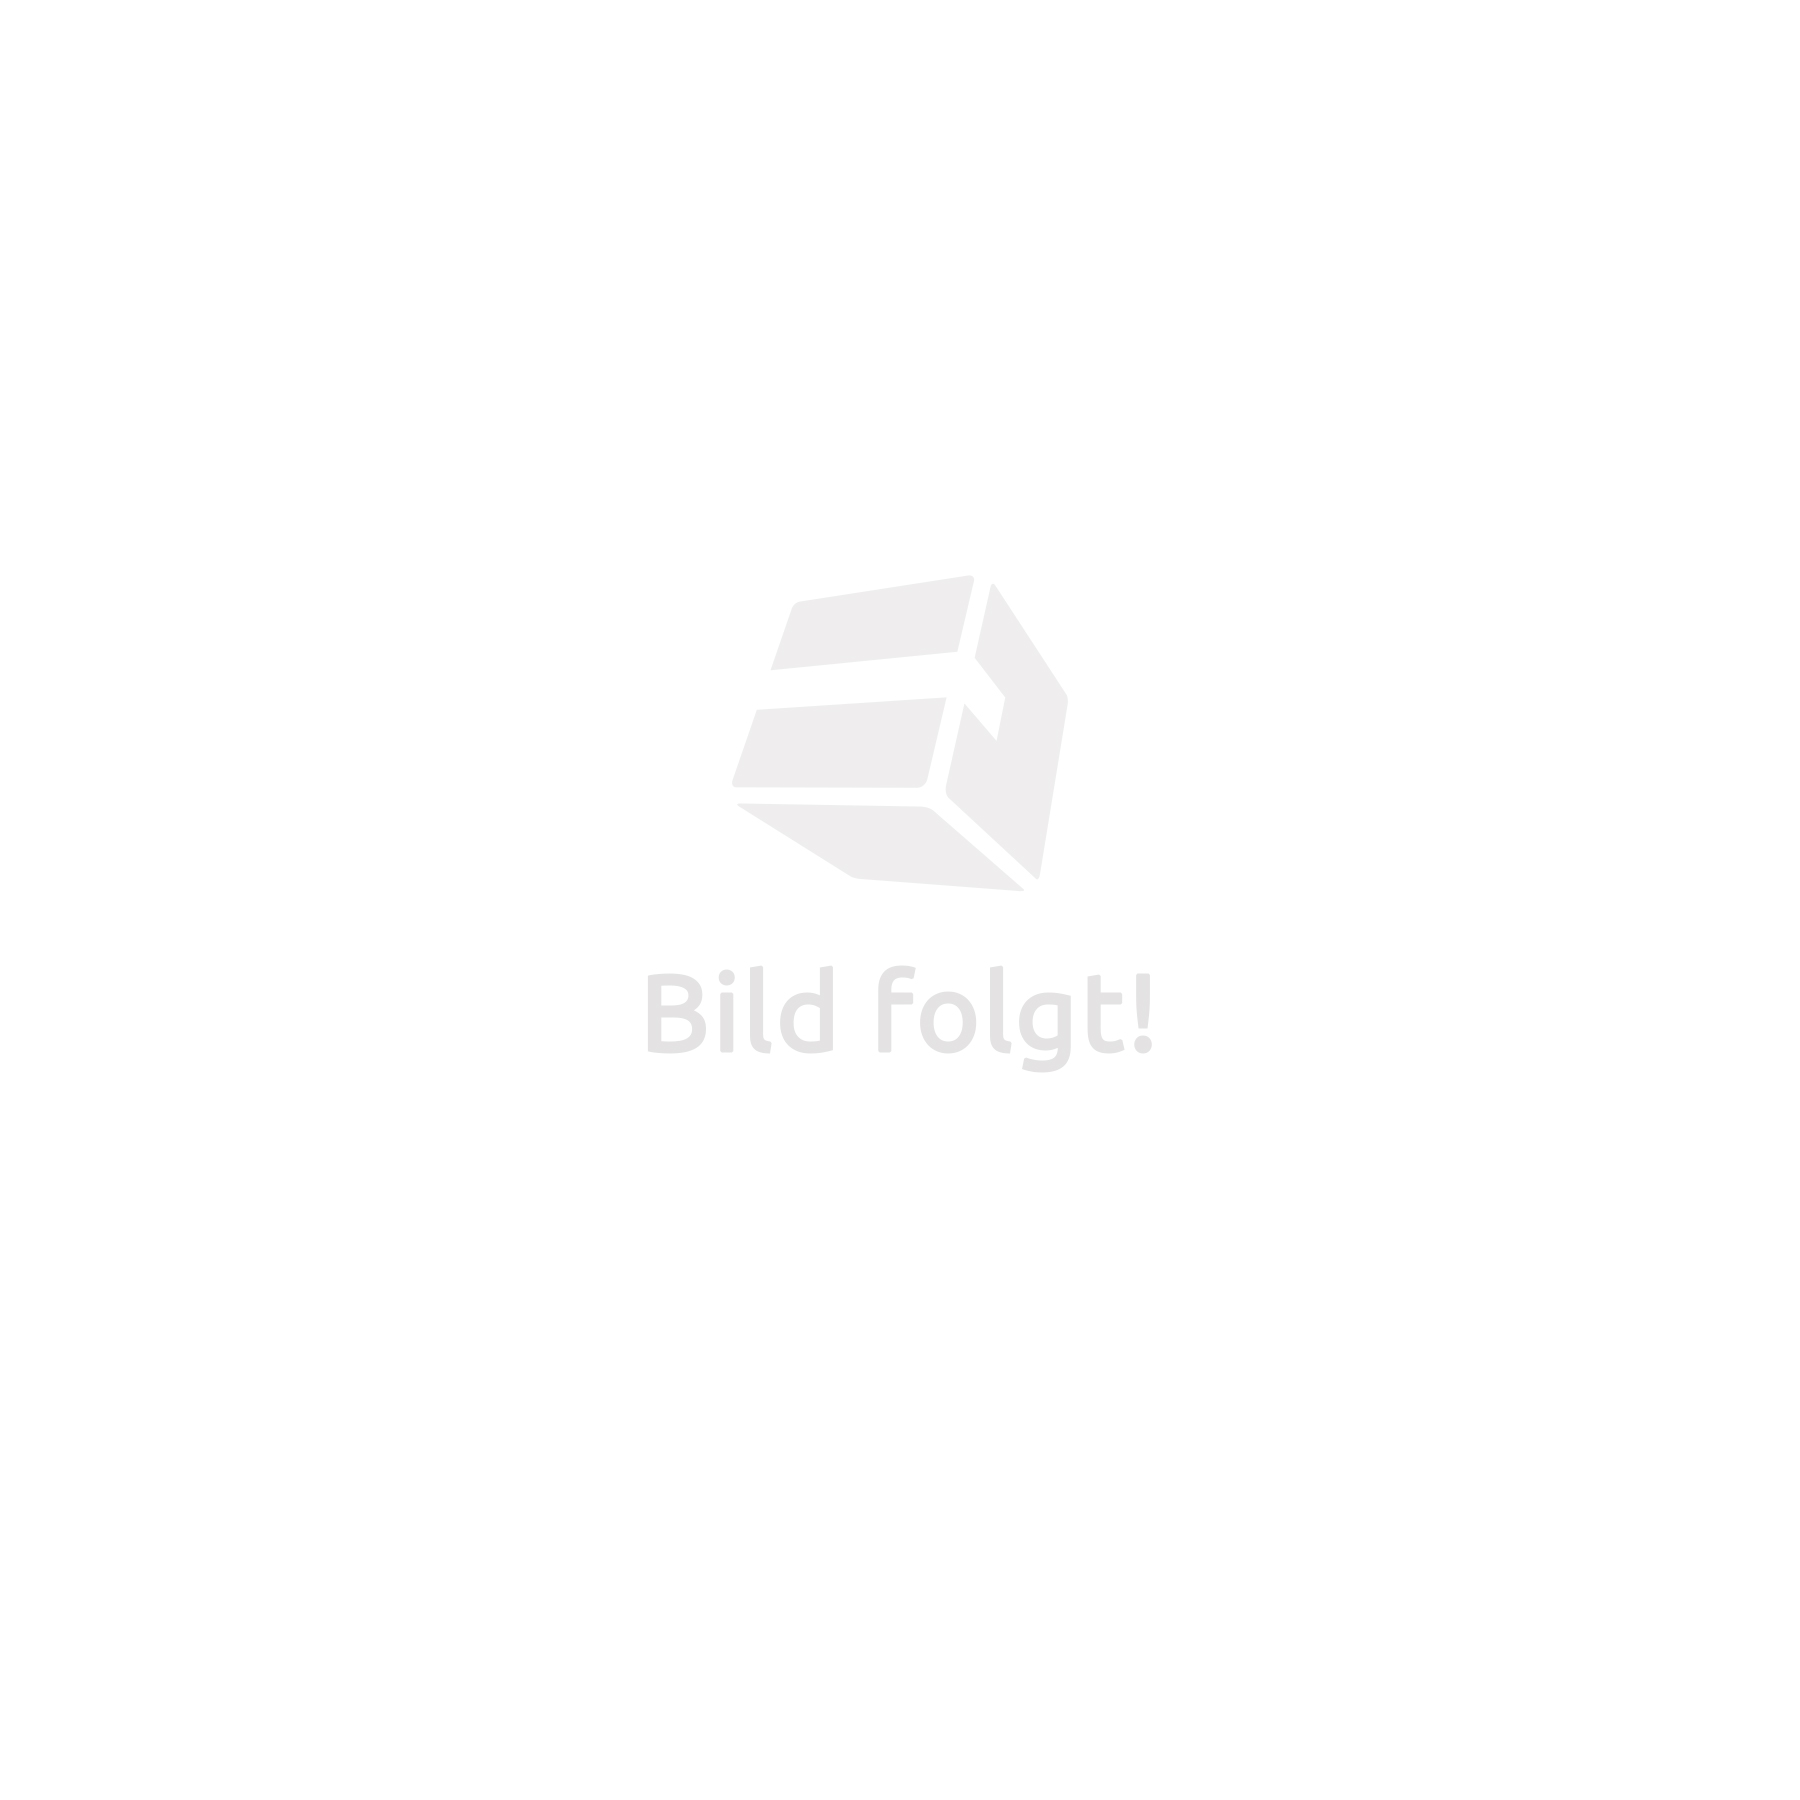 Patinete plegable rosa